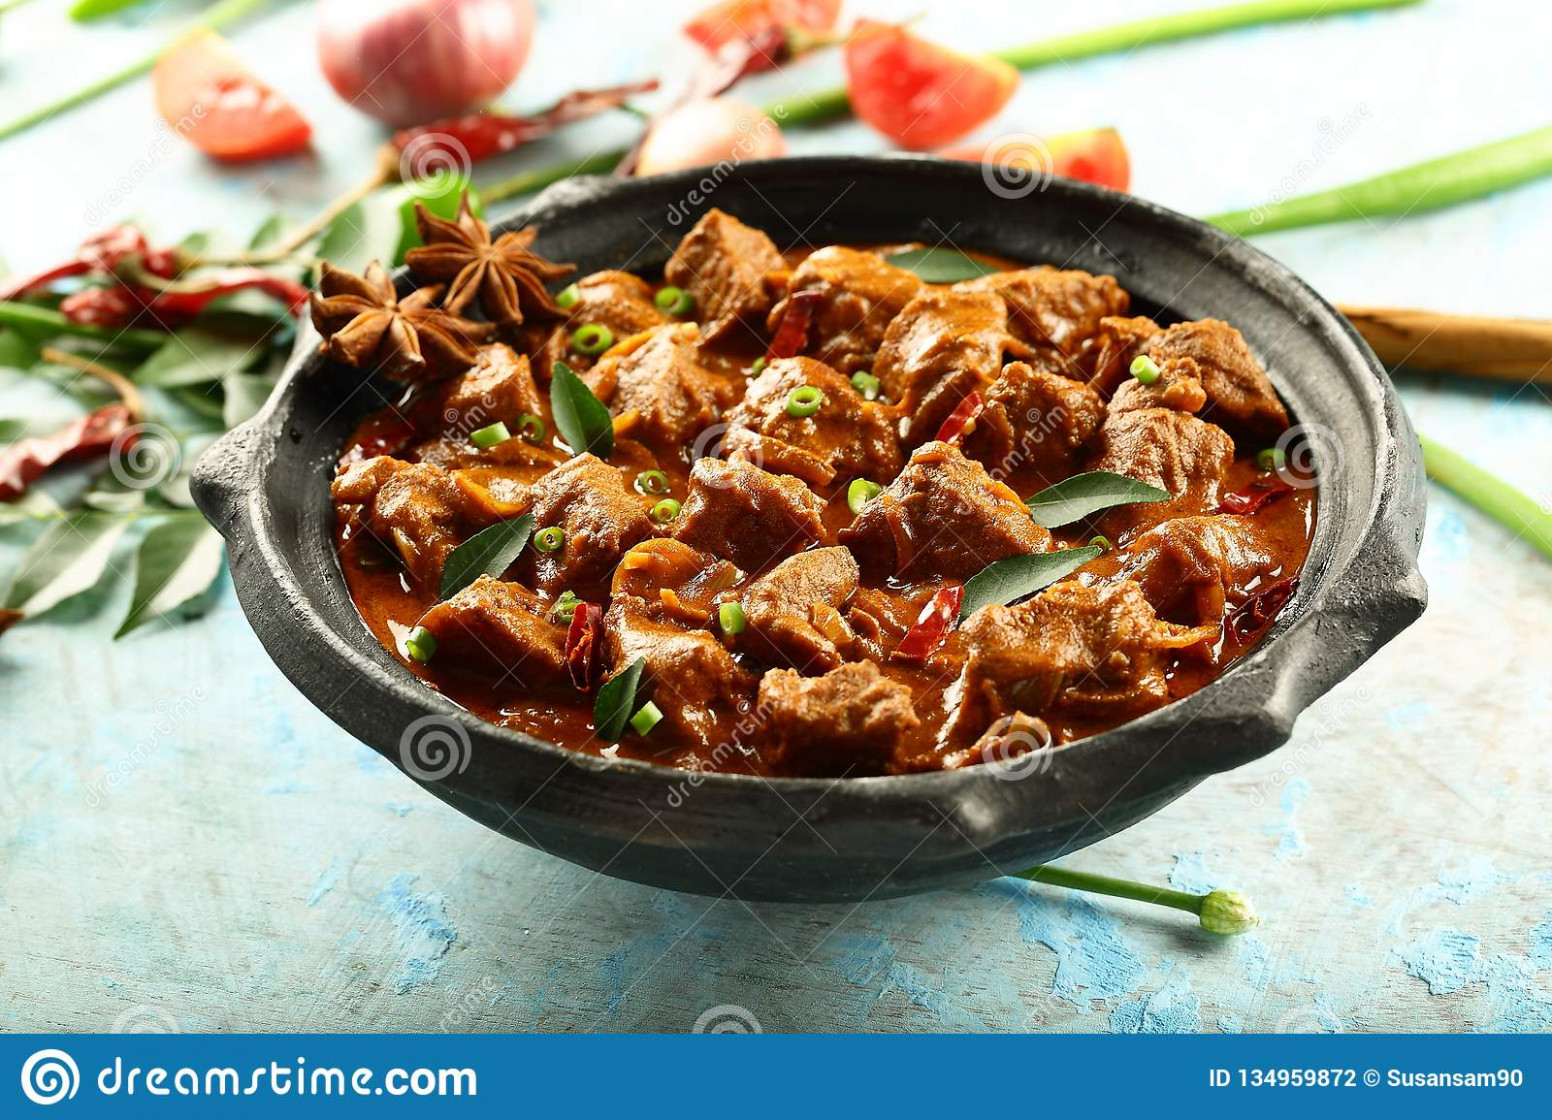 Homemade Mutton Curry From Kerala Cuisine. Stock Photo ..